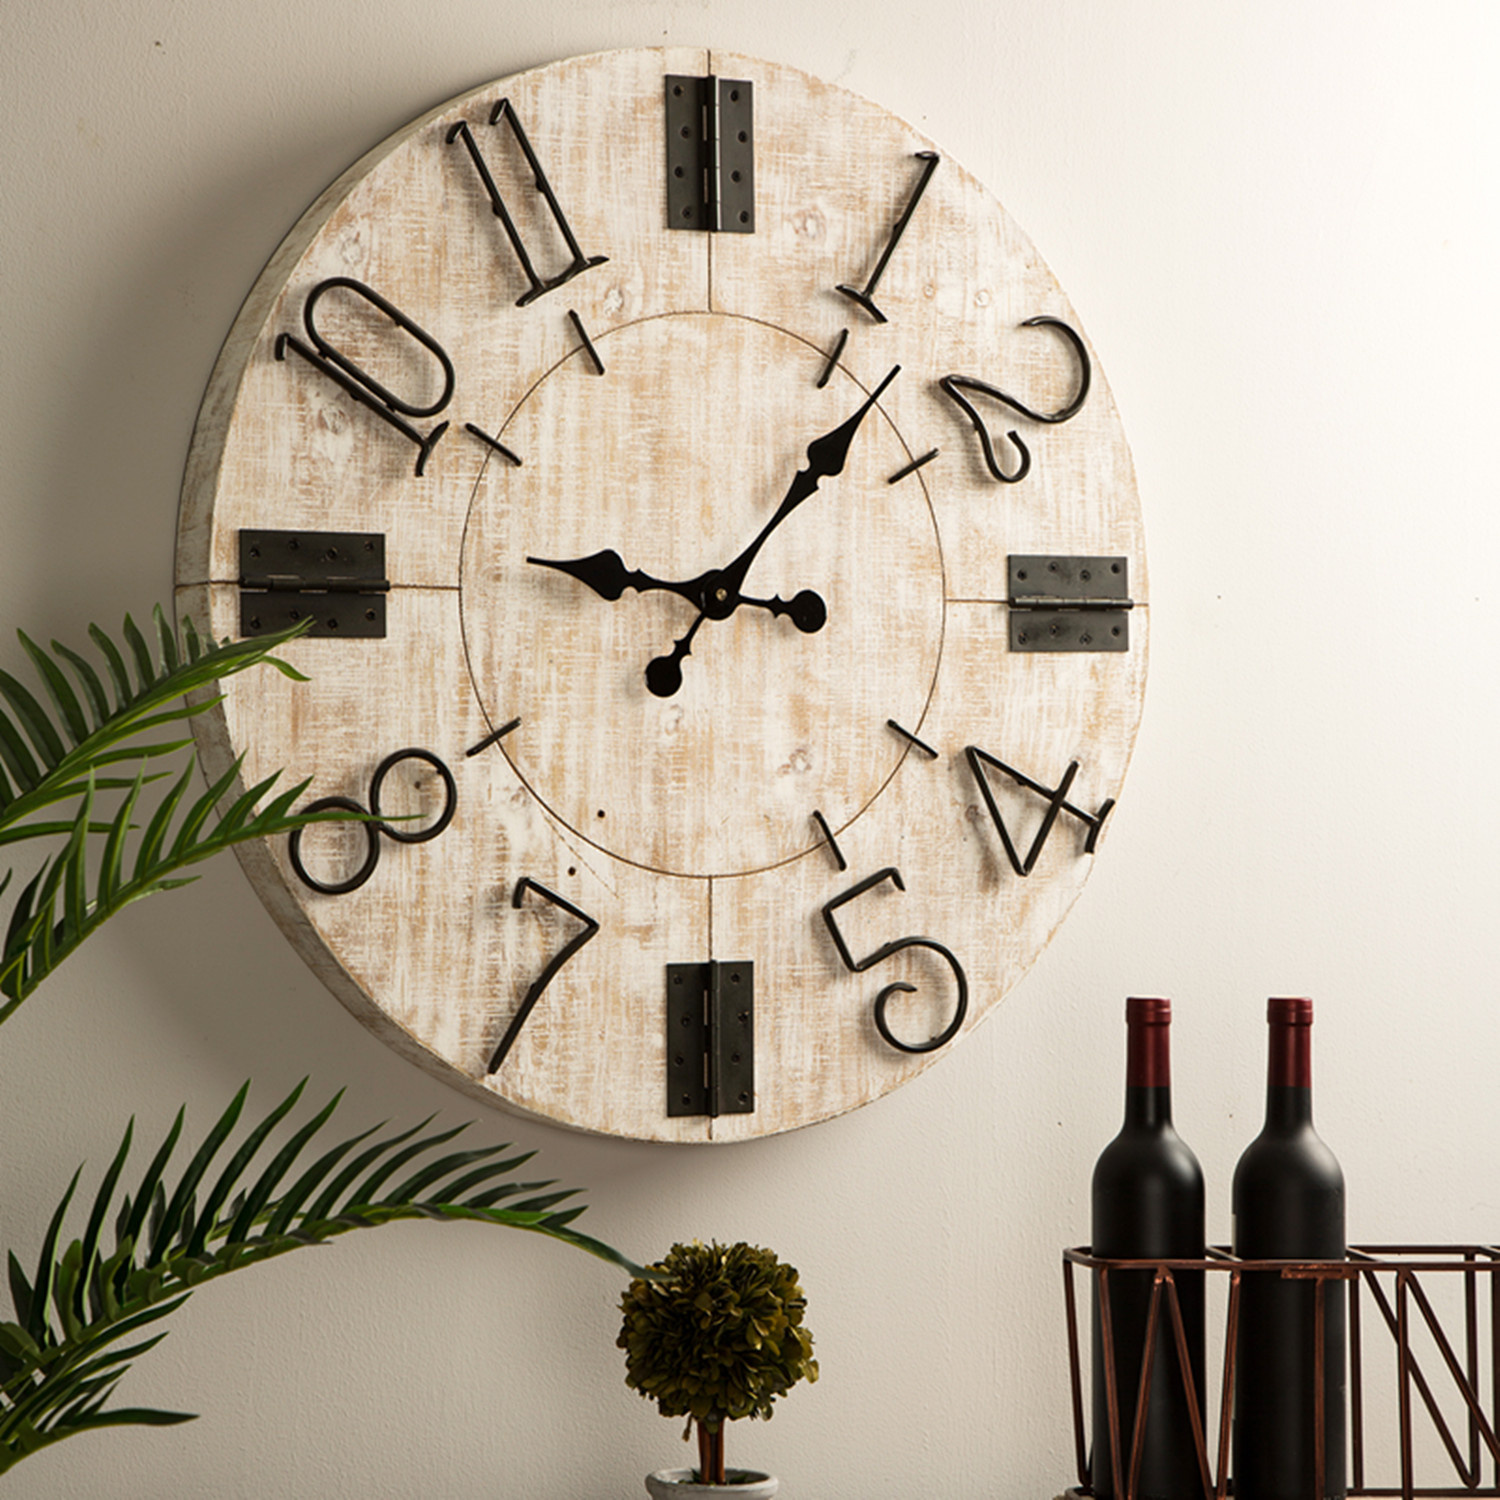 Details about glitzhome 28 rustic wooden large wall clock watch farmhouse style home decor